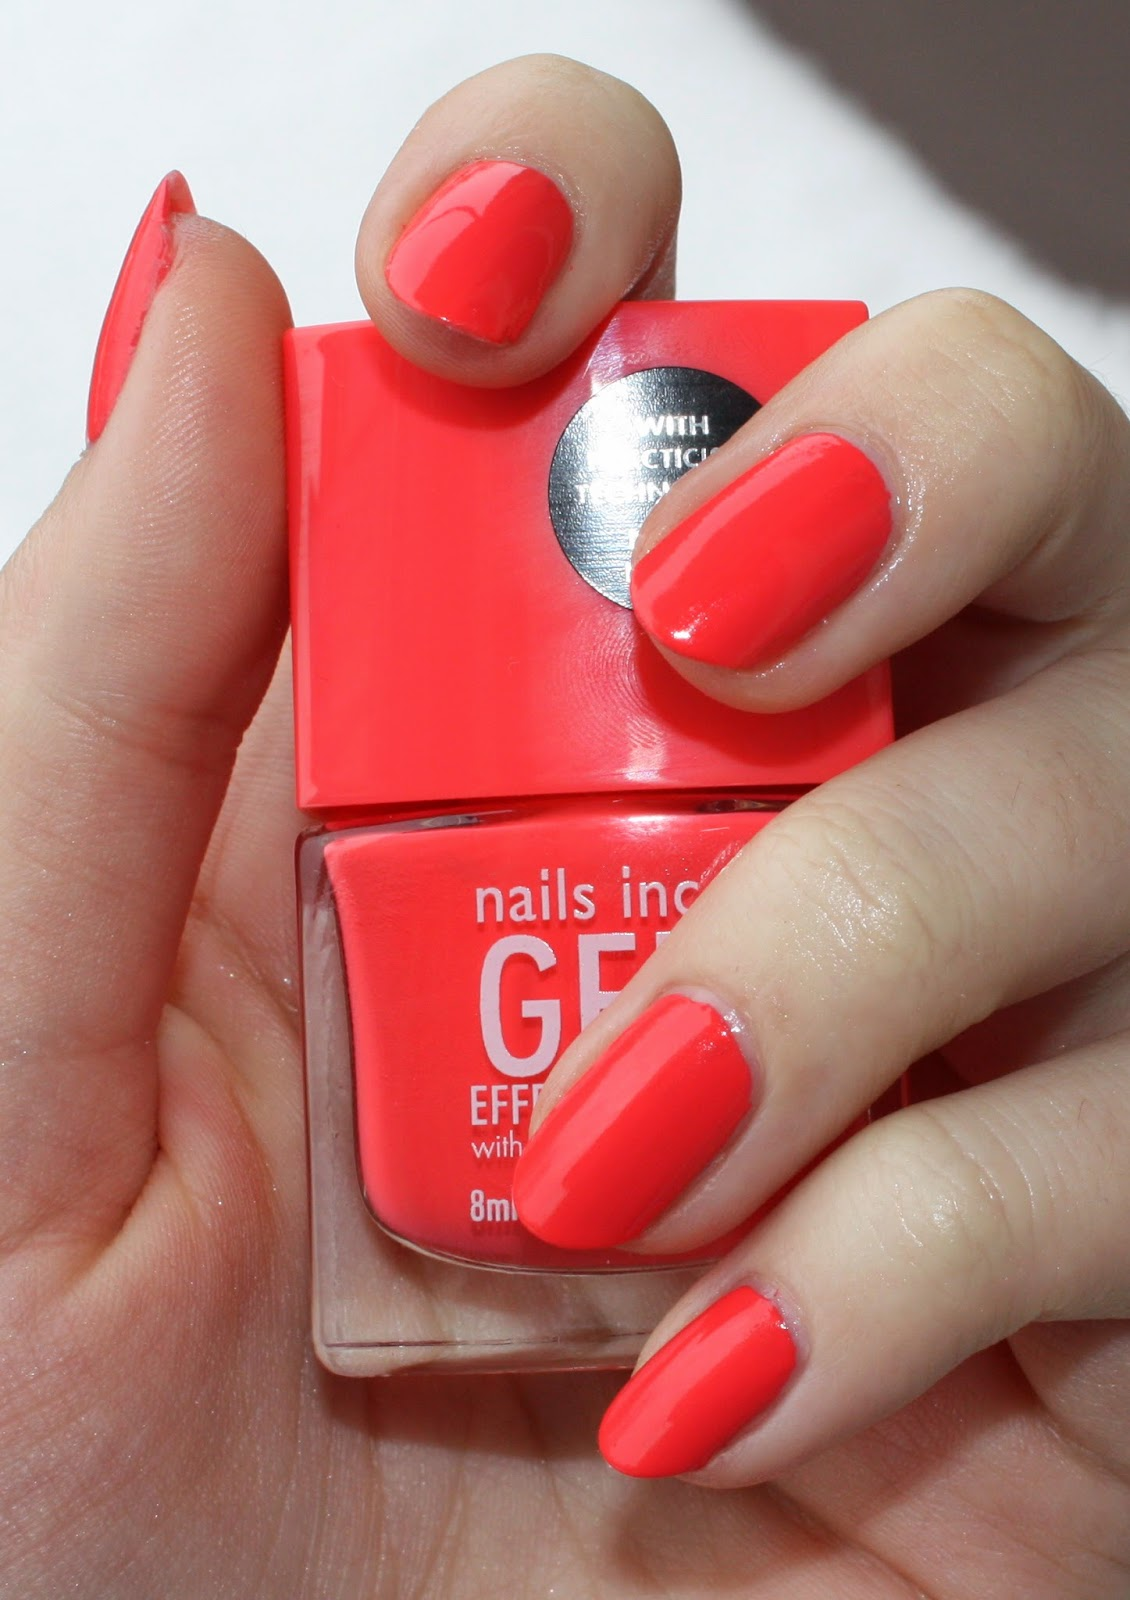 Nails Inc. Gel Effect Polish in Kensington Passage Swatch